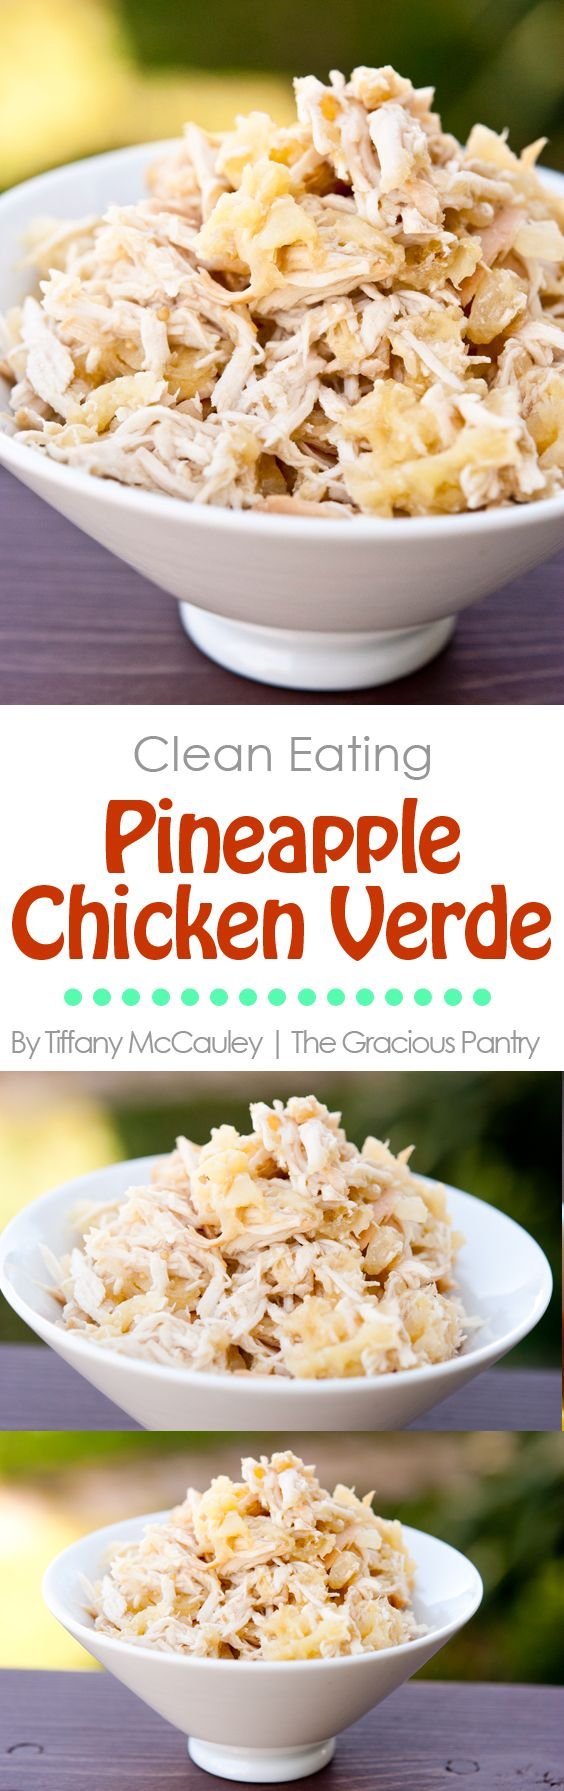 76 best clean eating recipes with 5 ingredients or less images on clean eating slow cooker pineapple chicken verde forumfinder Image collections